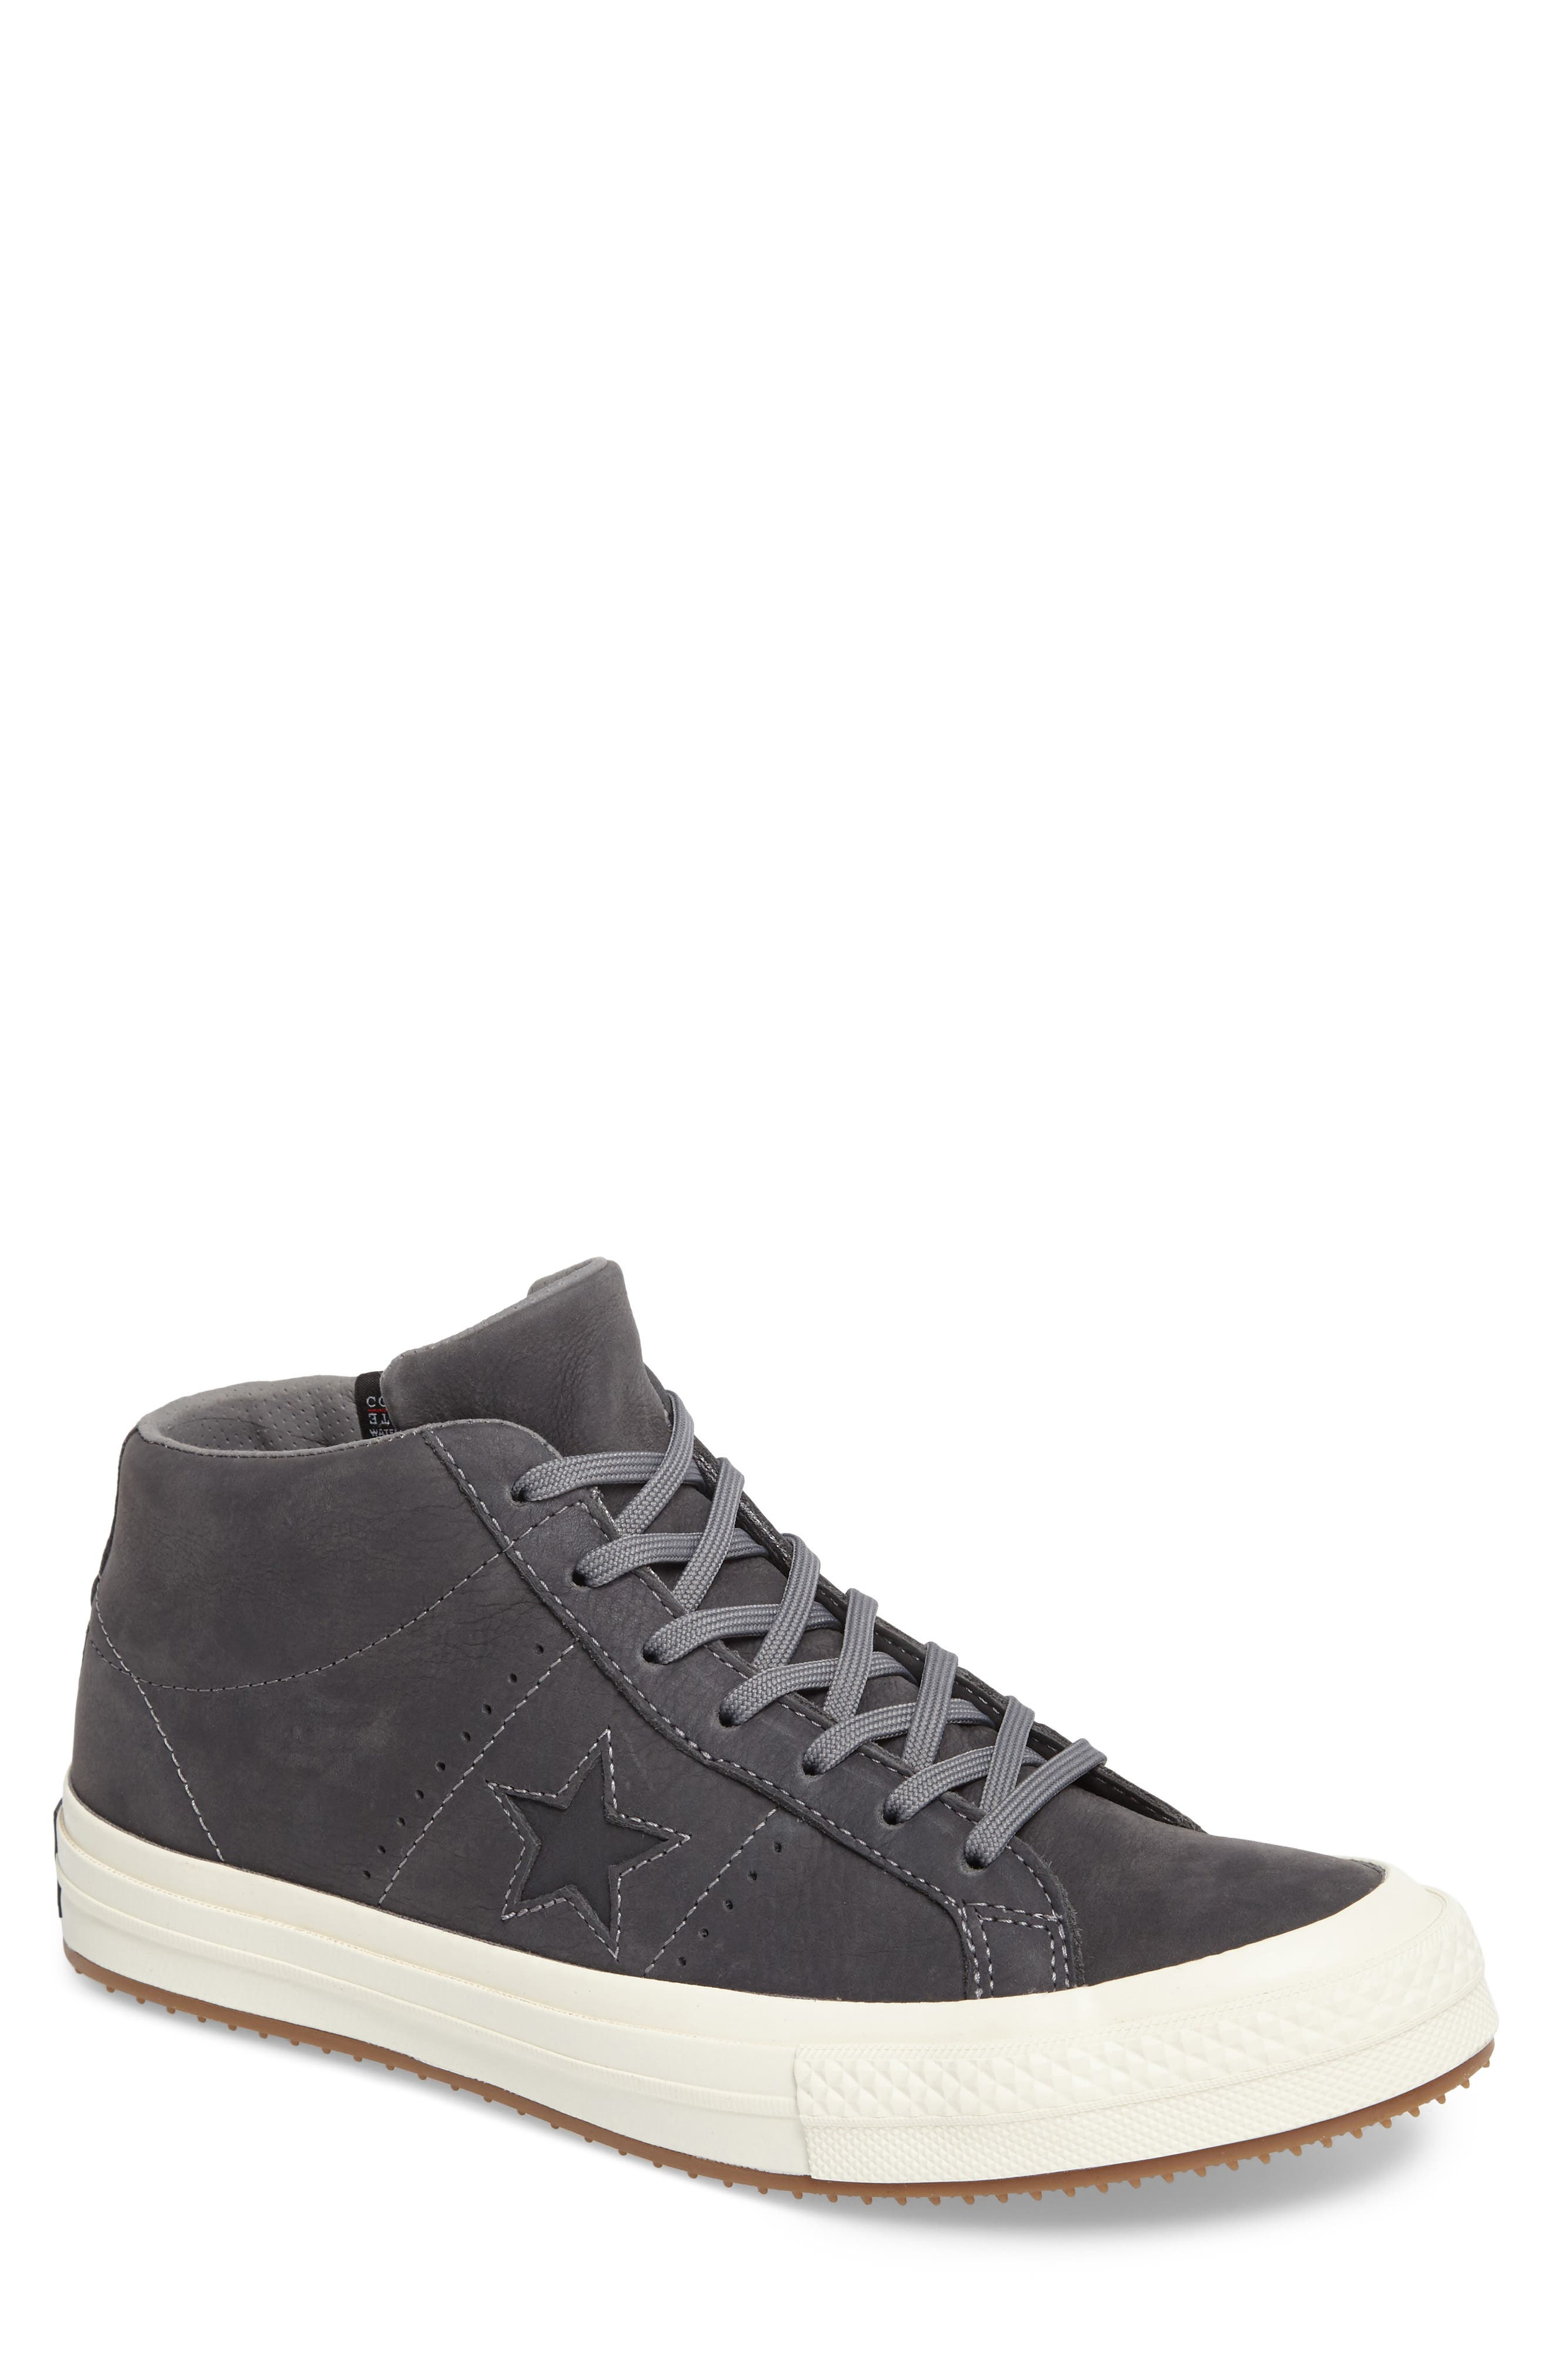 Main Image - Converse One Star Mid Sneaker (Men)